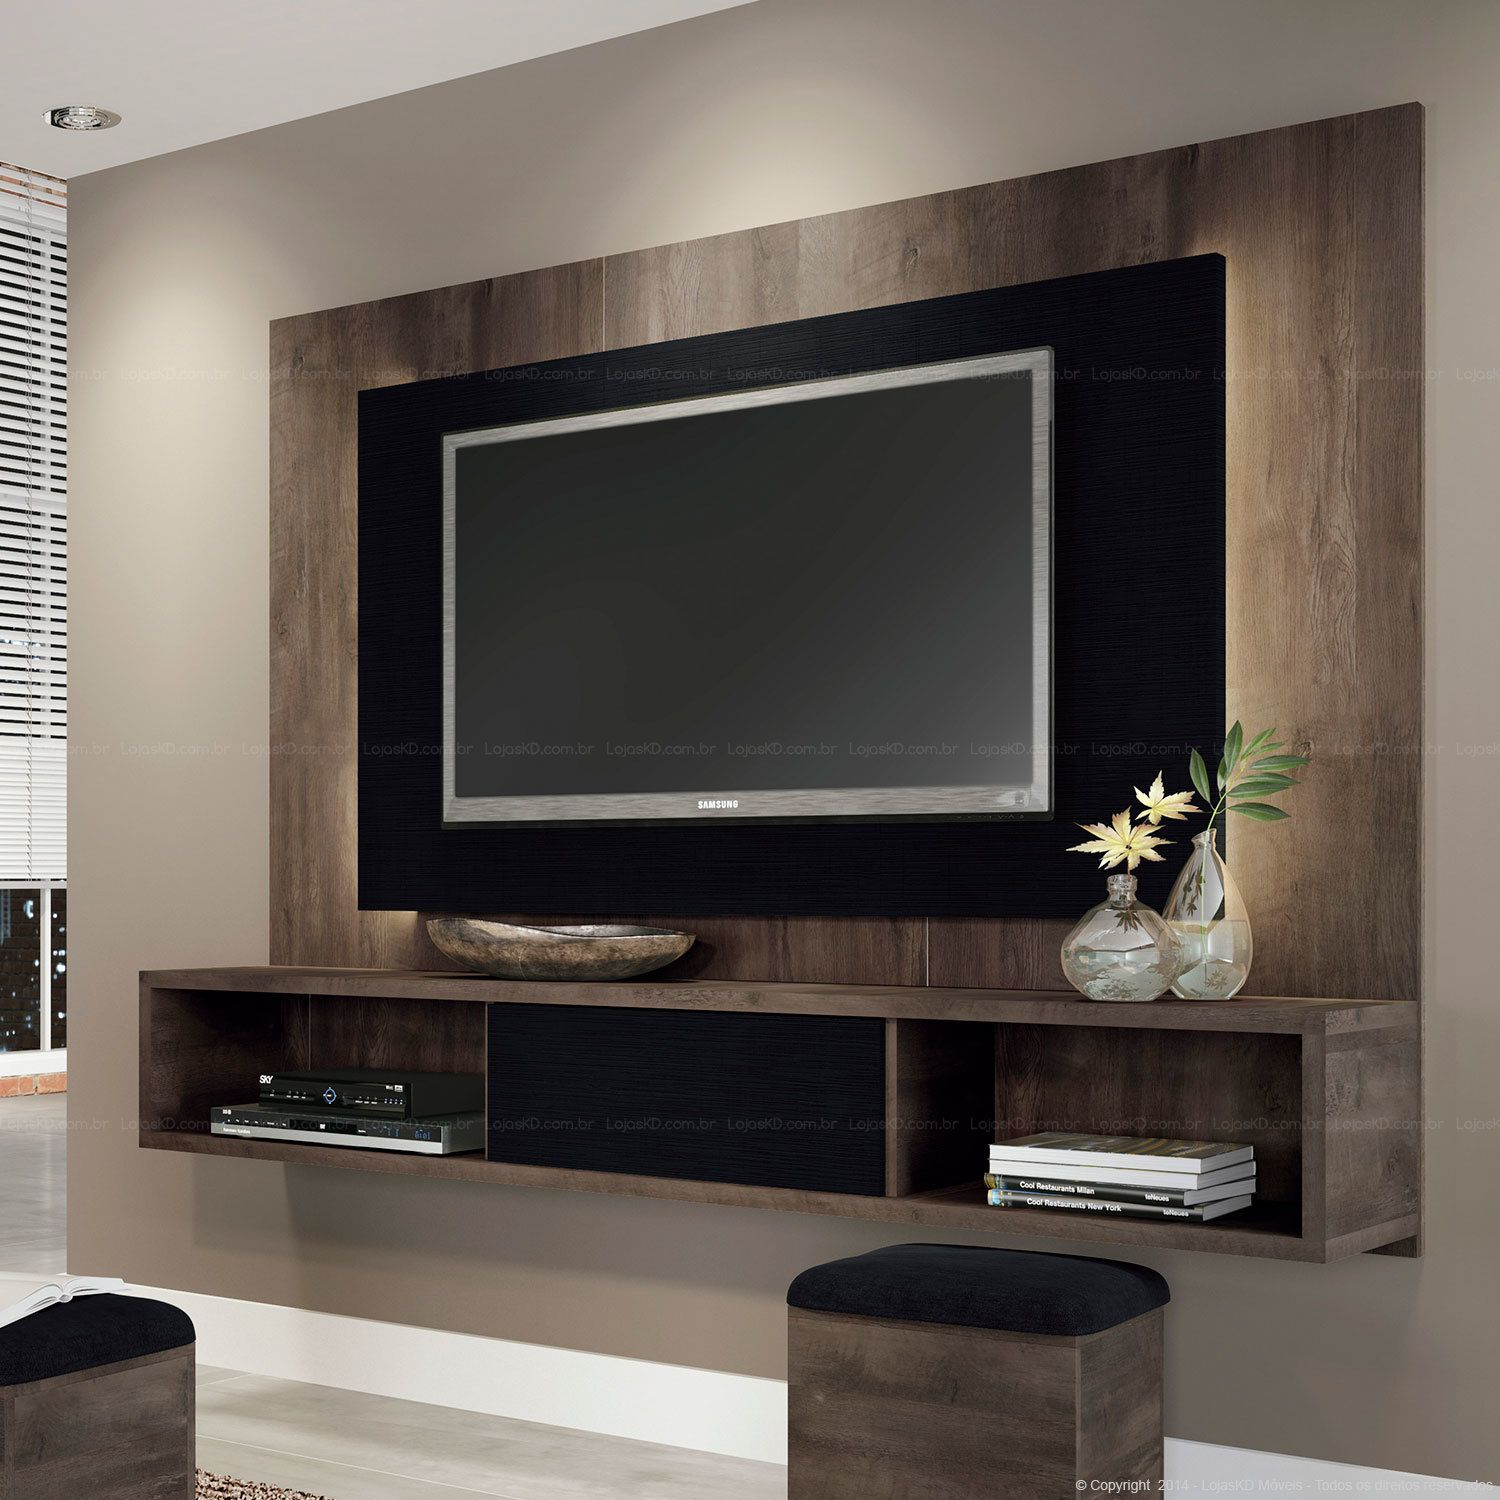 Tv Decor For Wall Home Units